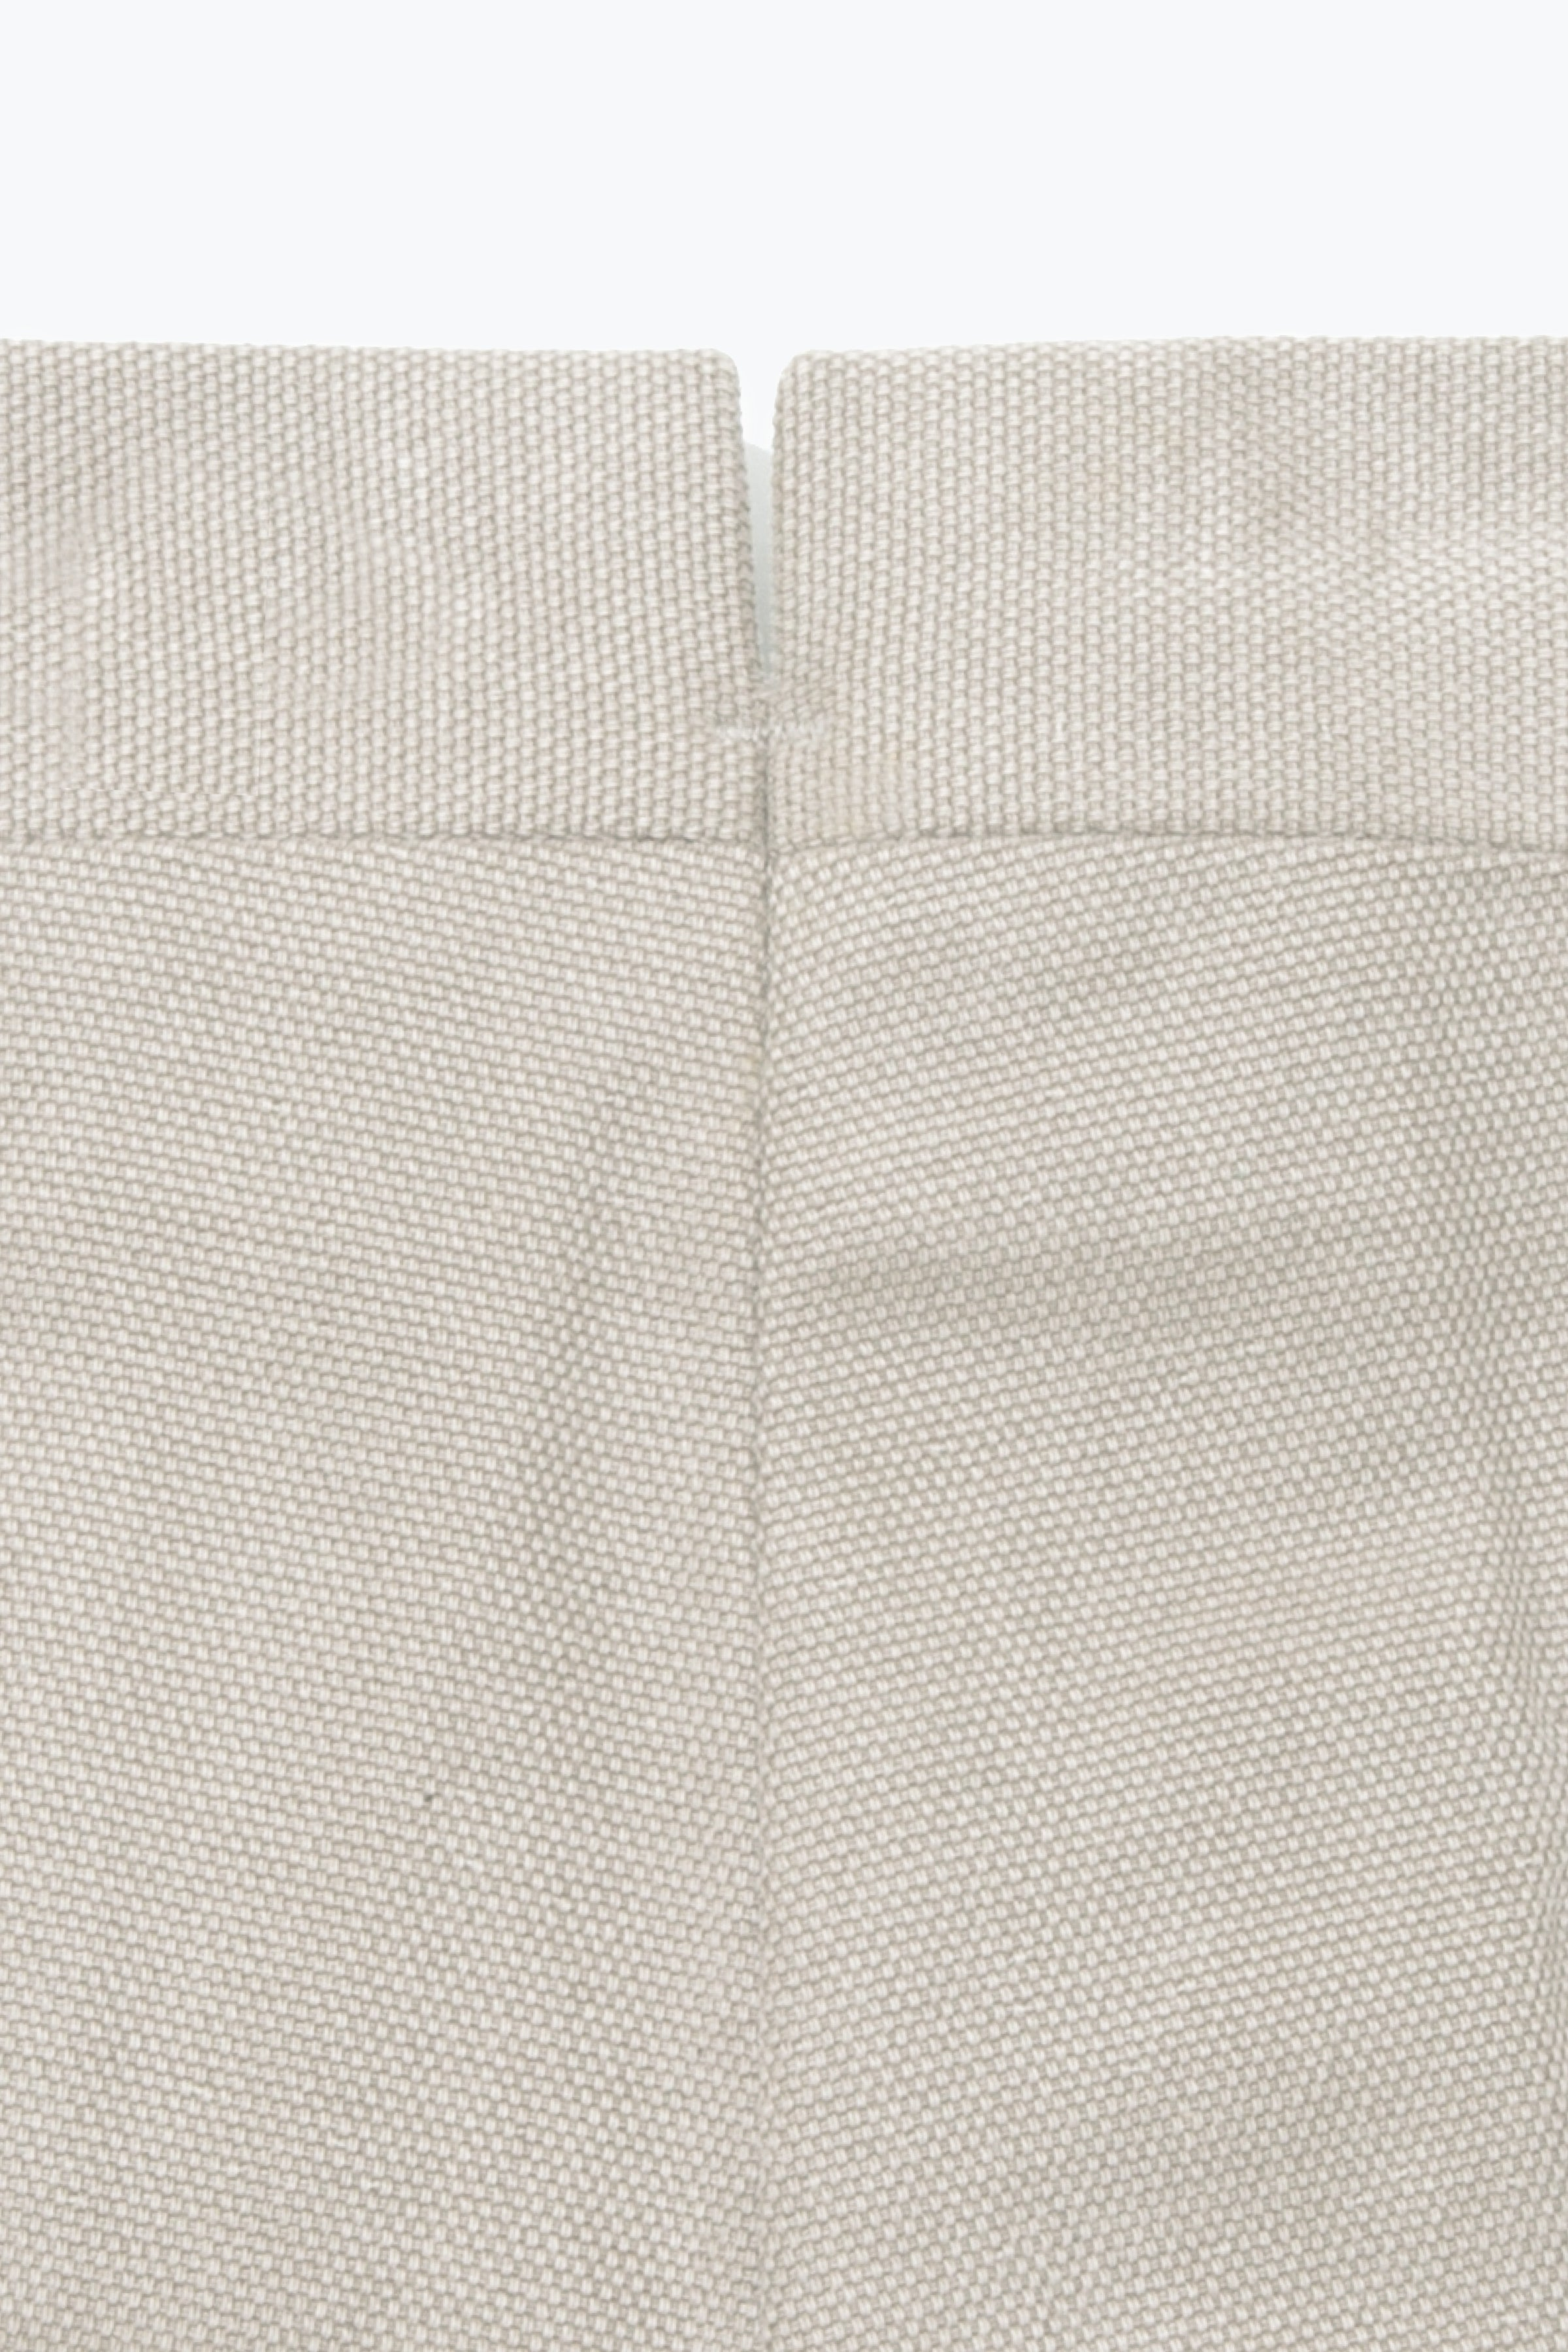 MTO Trousers - Single Pleat (Basketweave Sand)